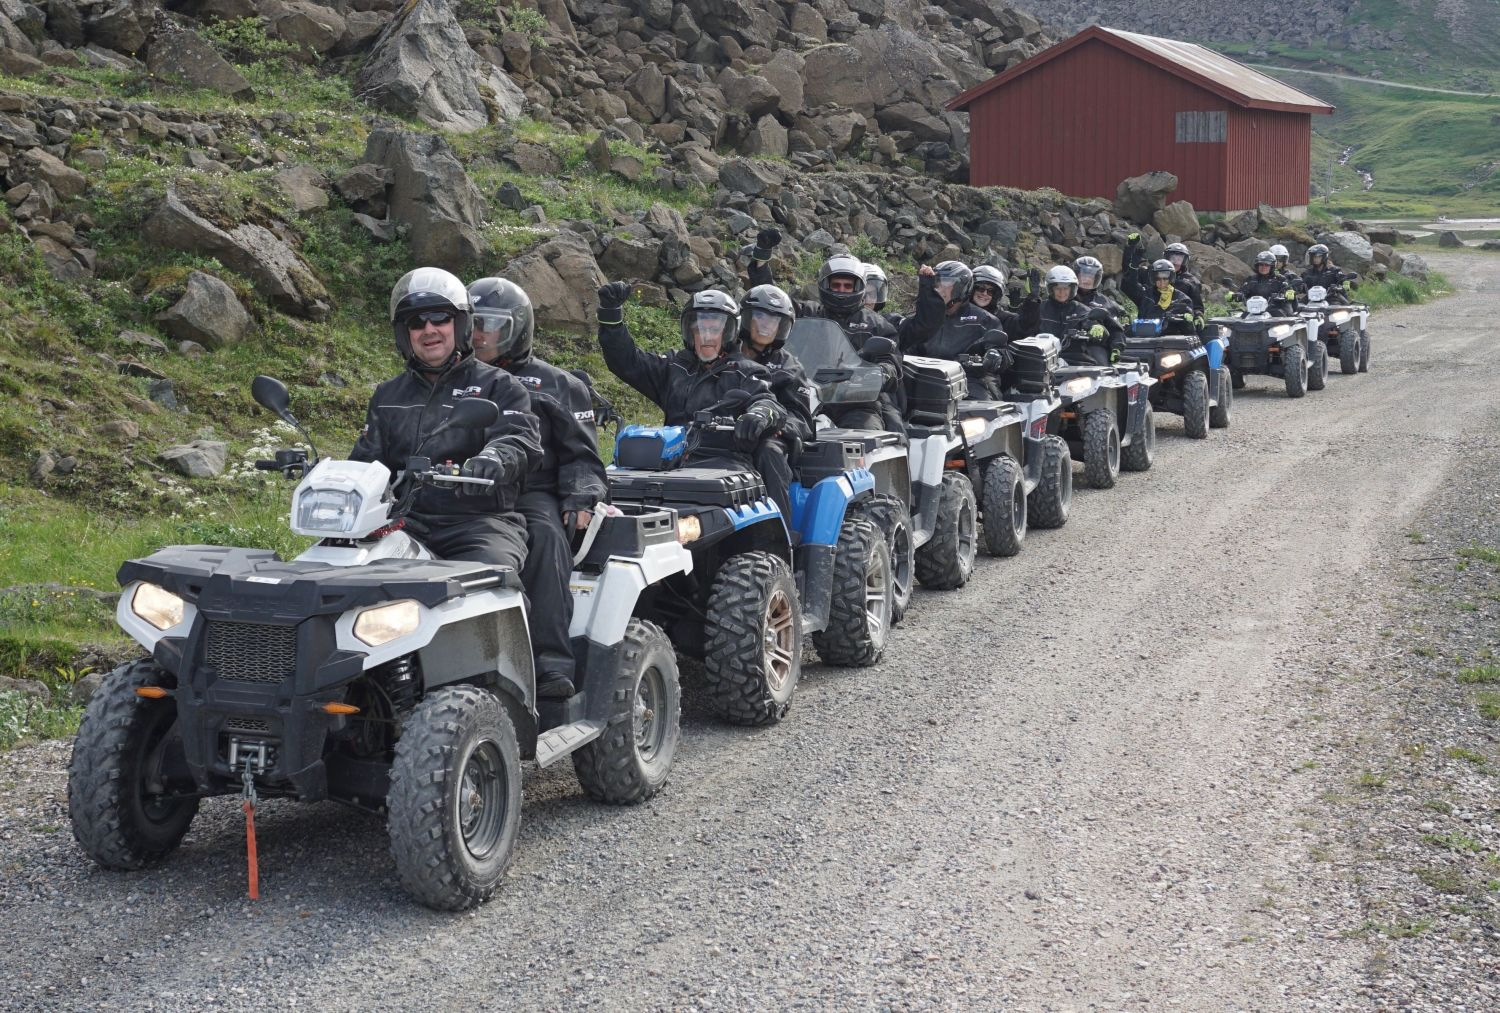 Quadbiking at the Northcape in the summer